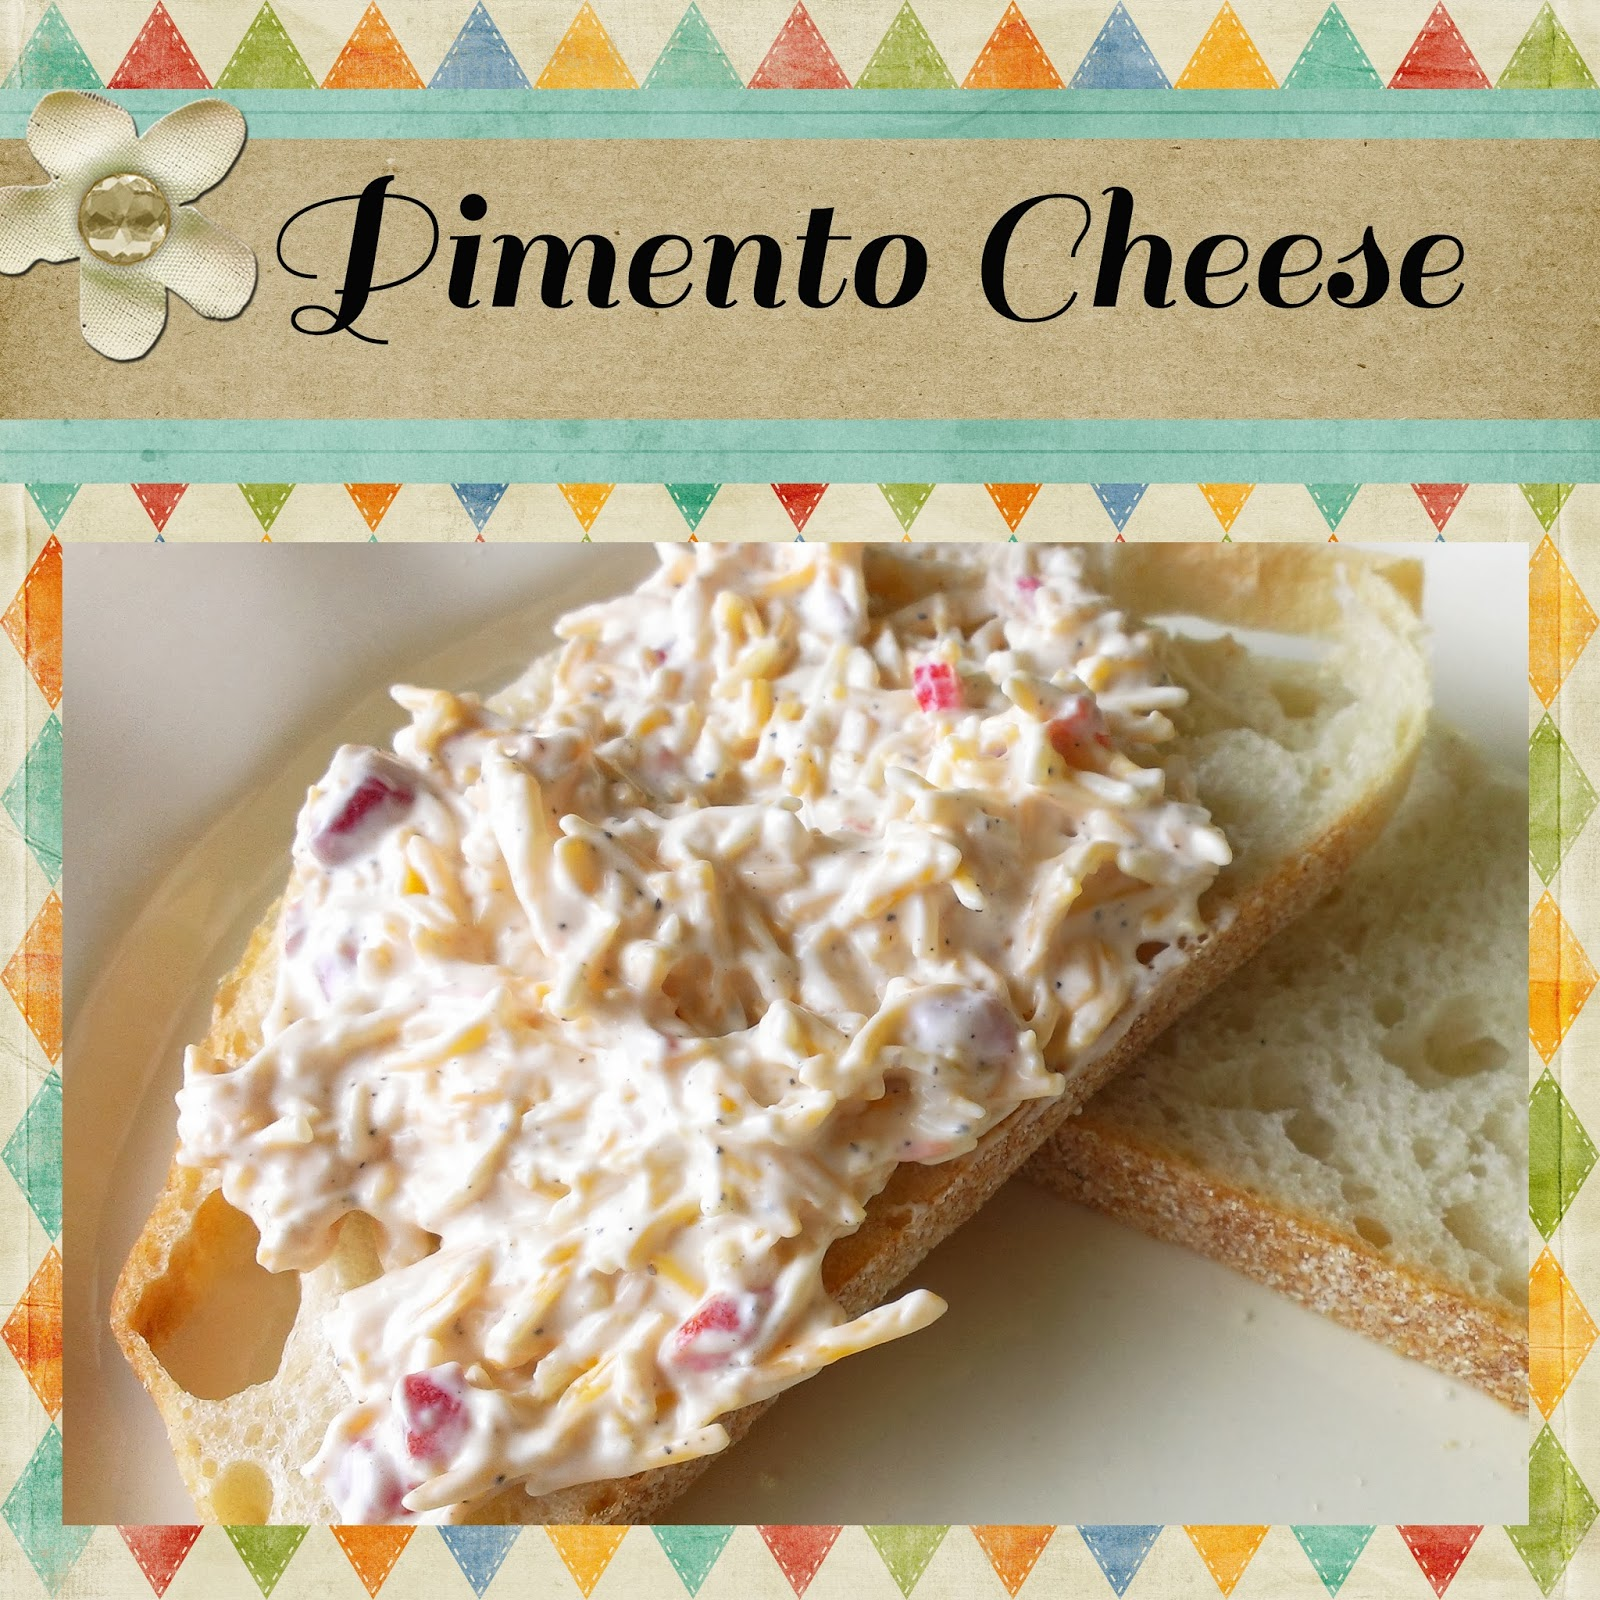 http://gloriouslymade.blogspot.com/2013/11/pimento-cheese.html